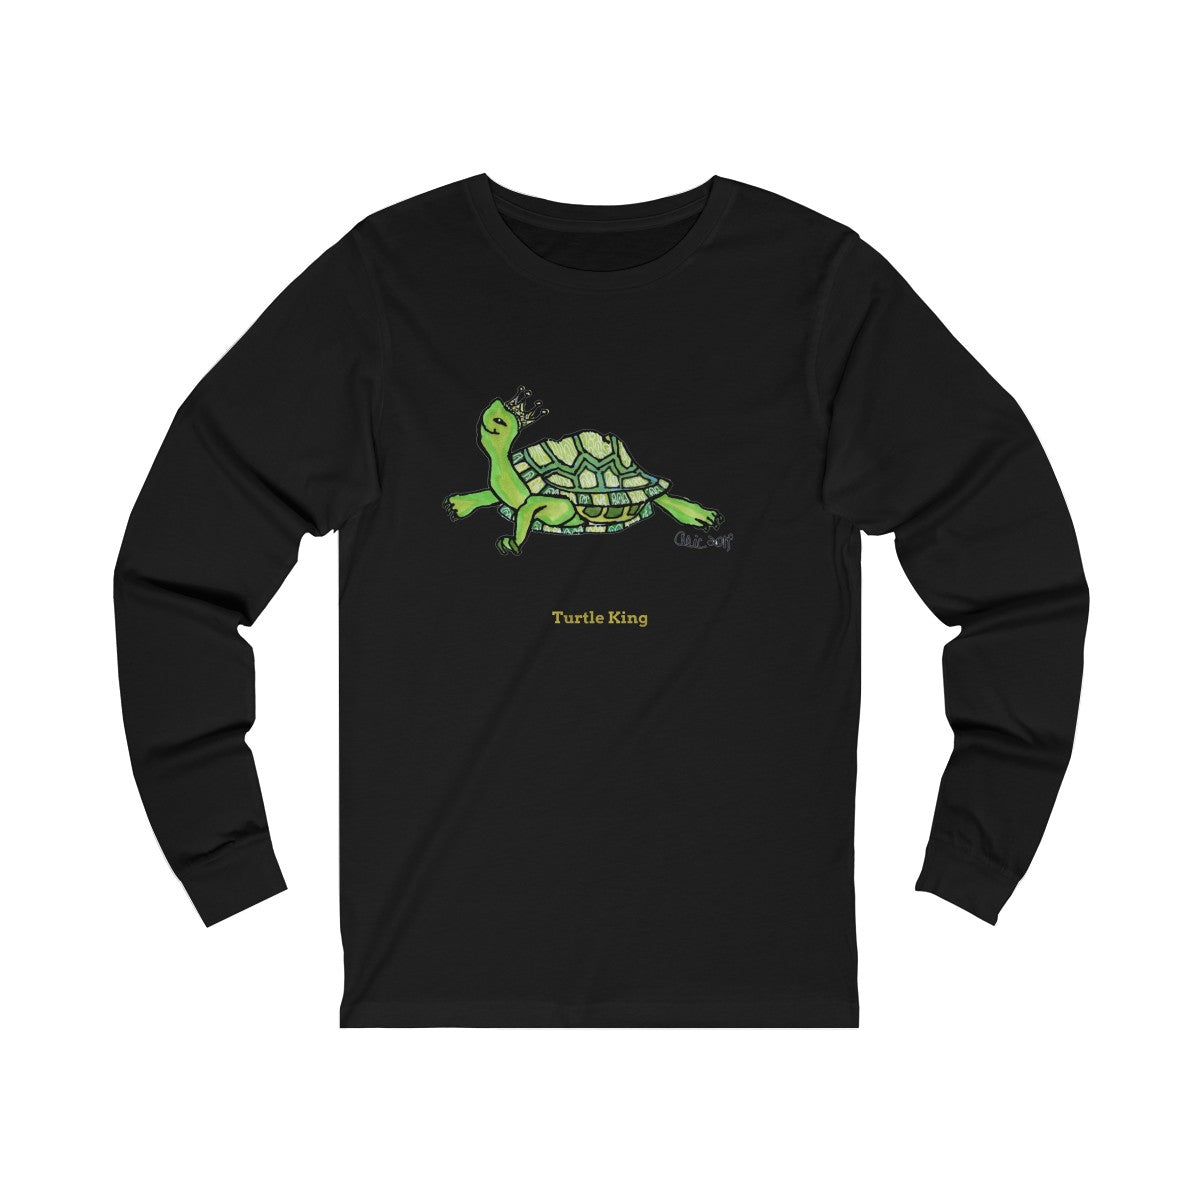 Turtle King Unisex Jersey Long Sleeve Tee Unisex T-Shirt, Made in USA (Size: X-2XL)-Long-sleeve-Black-L-Heidi Kimura Art LLC